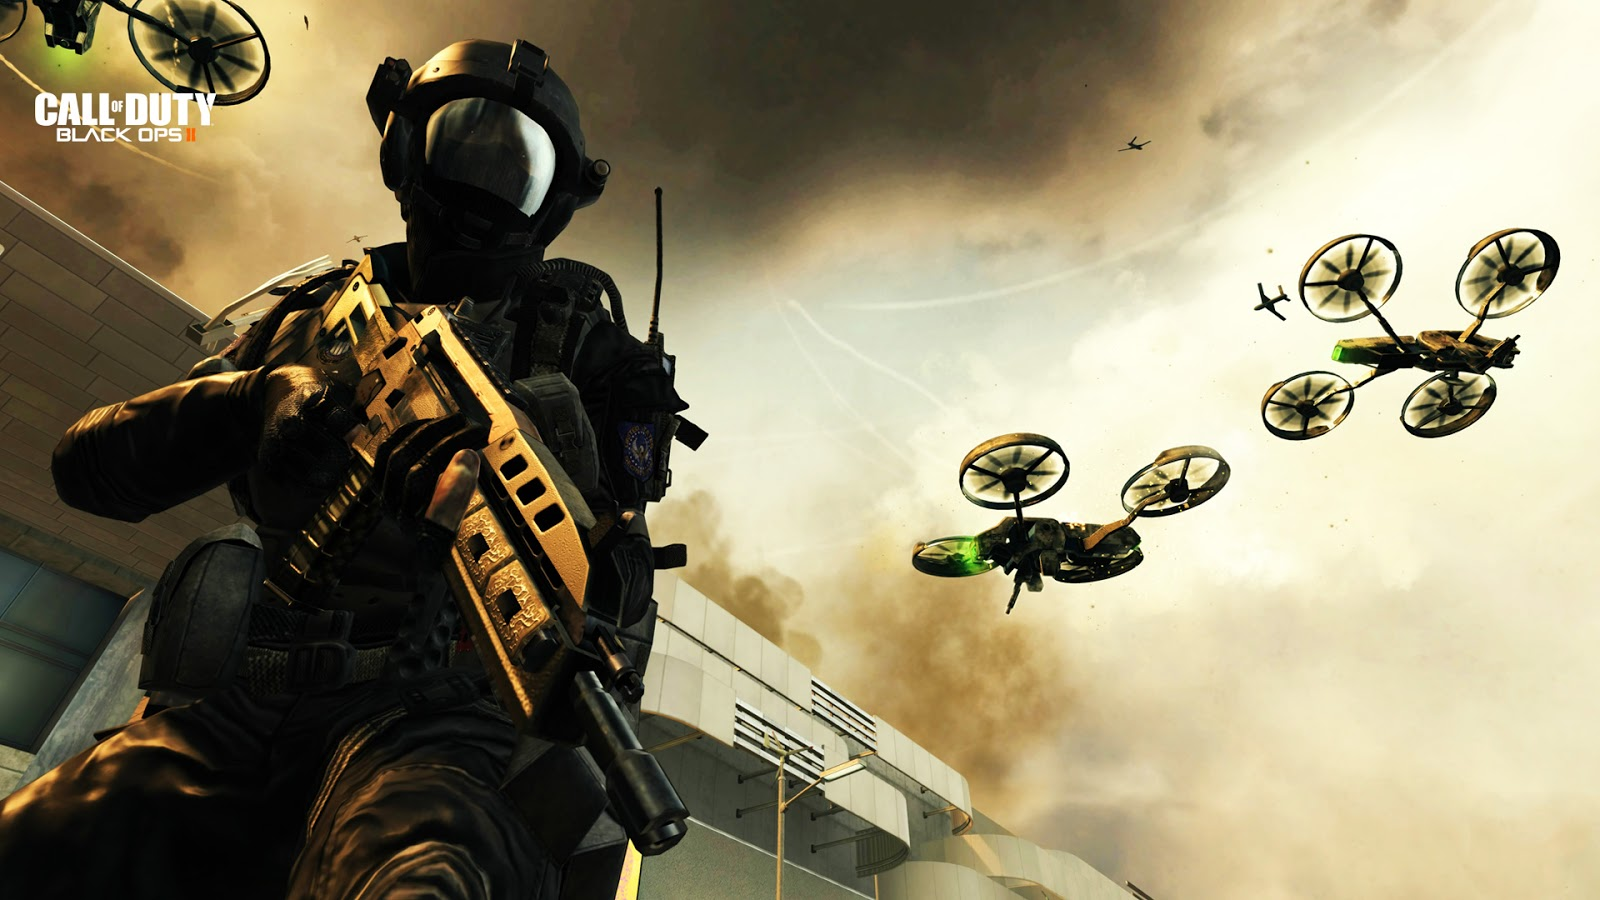 TOP HD WALLPAPERS CALL OF DUTY HD WALLPAPERS 1920x1080 1600x900